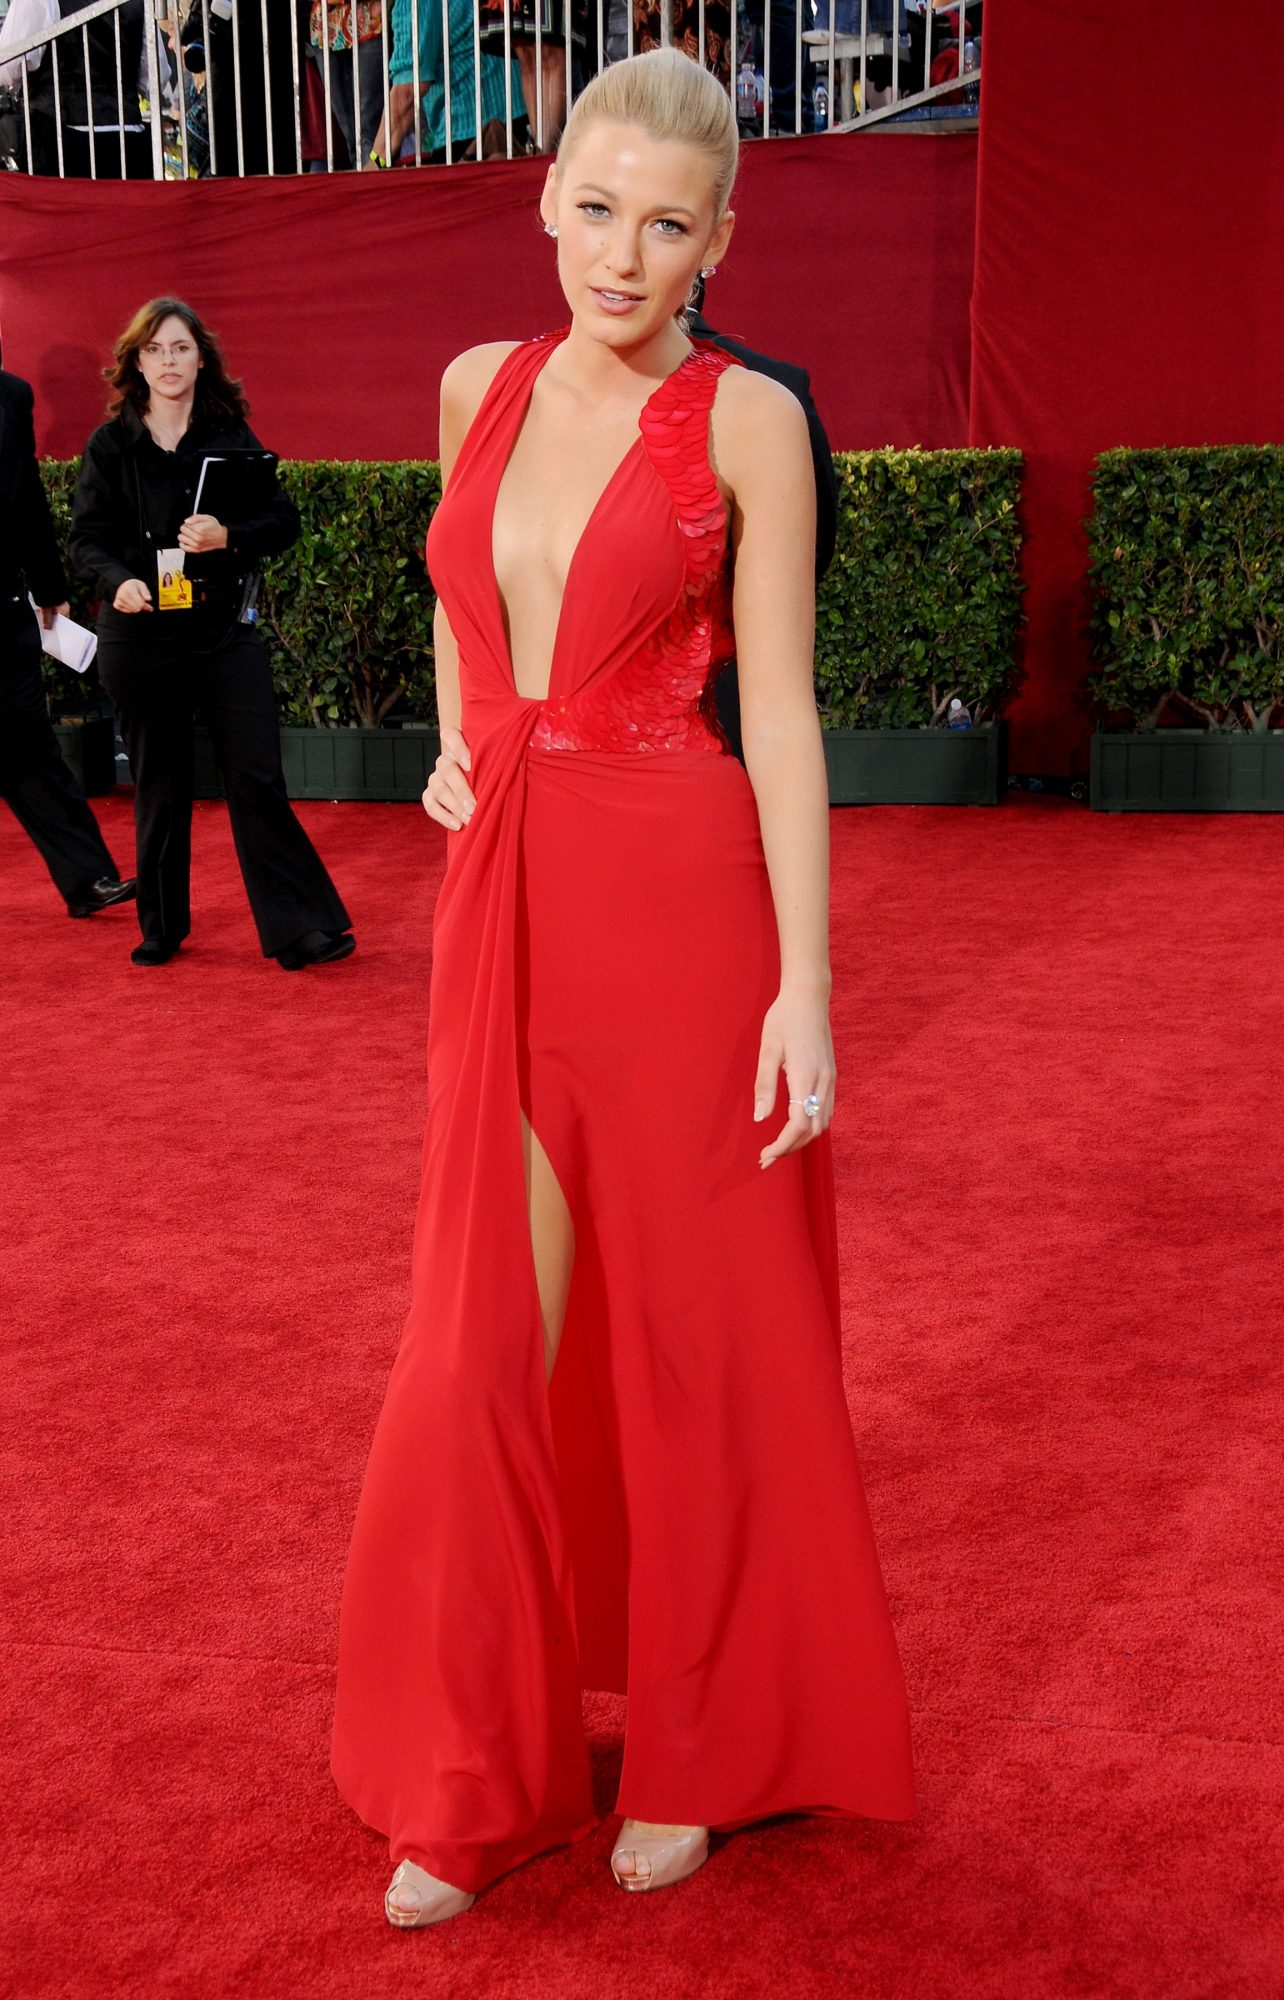 blake lively red emmy awards dress, best emmy awards red carpet looks